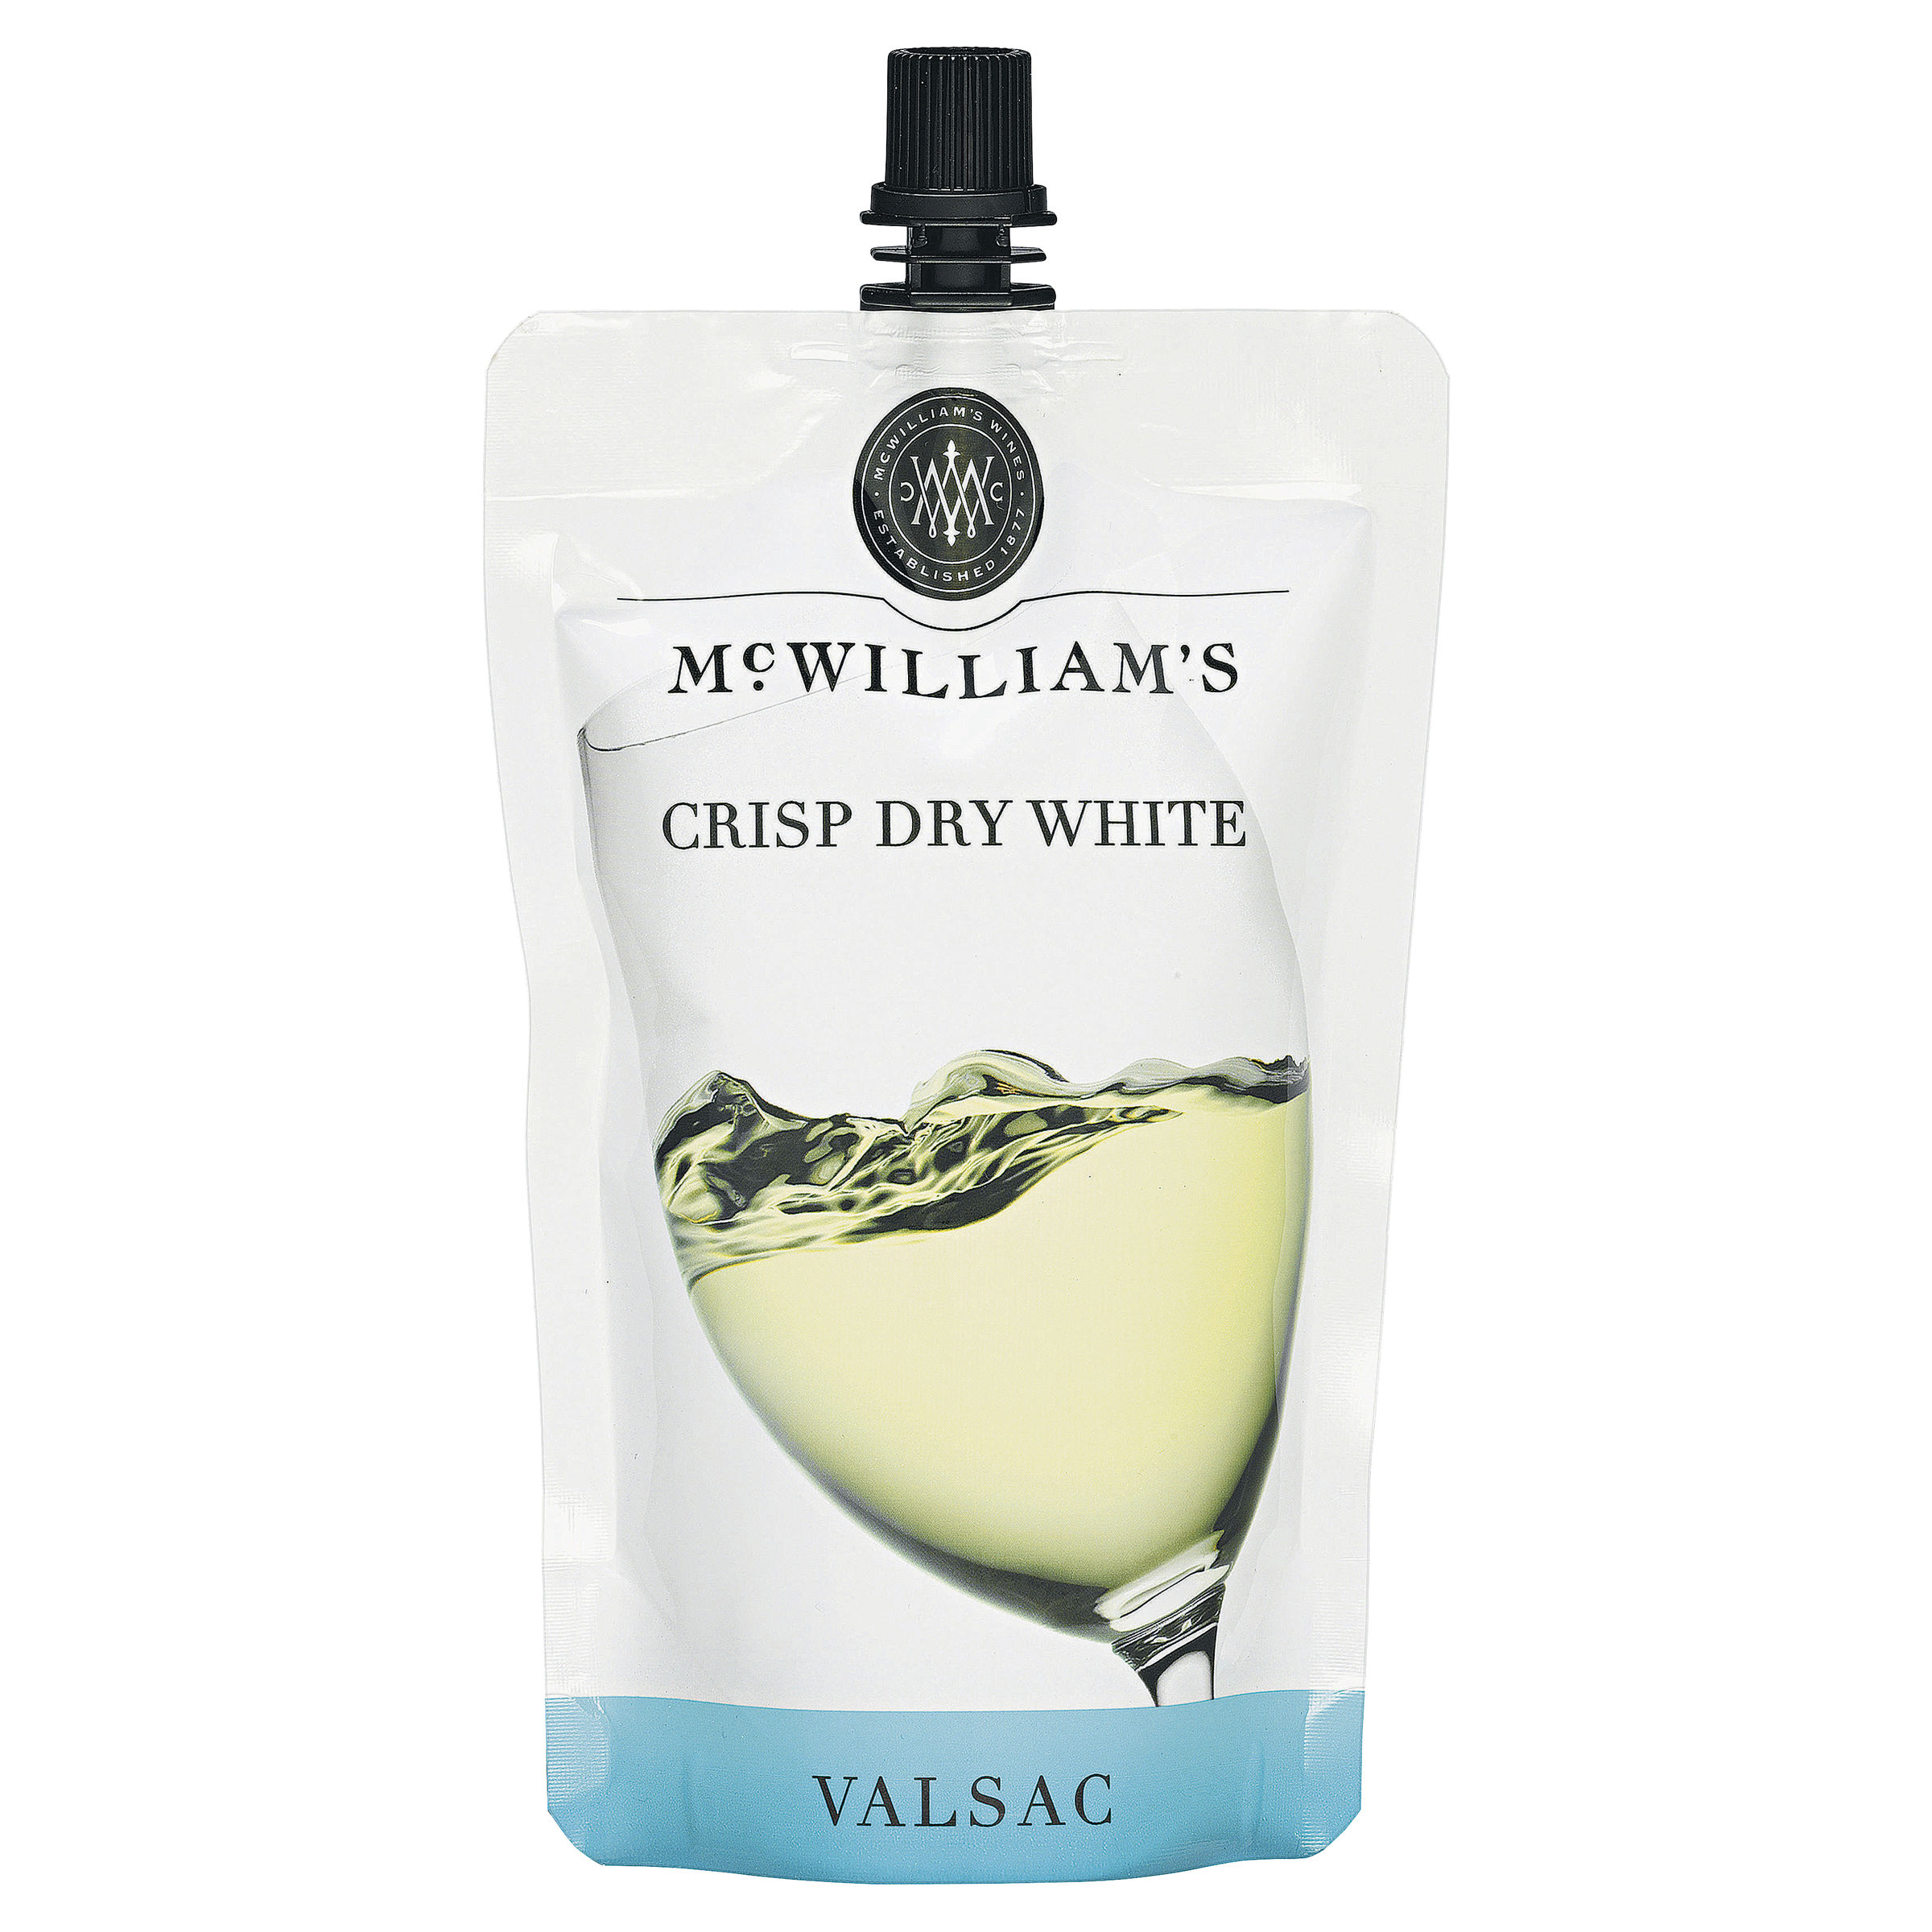 MCWILLIAM'S VALSAC SACHET RIESLING